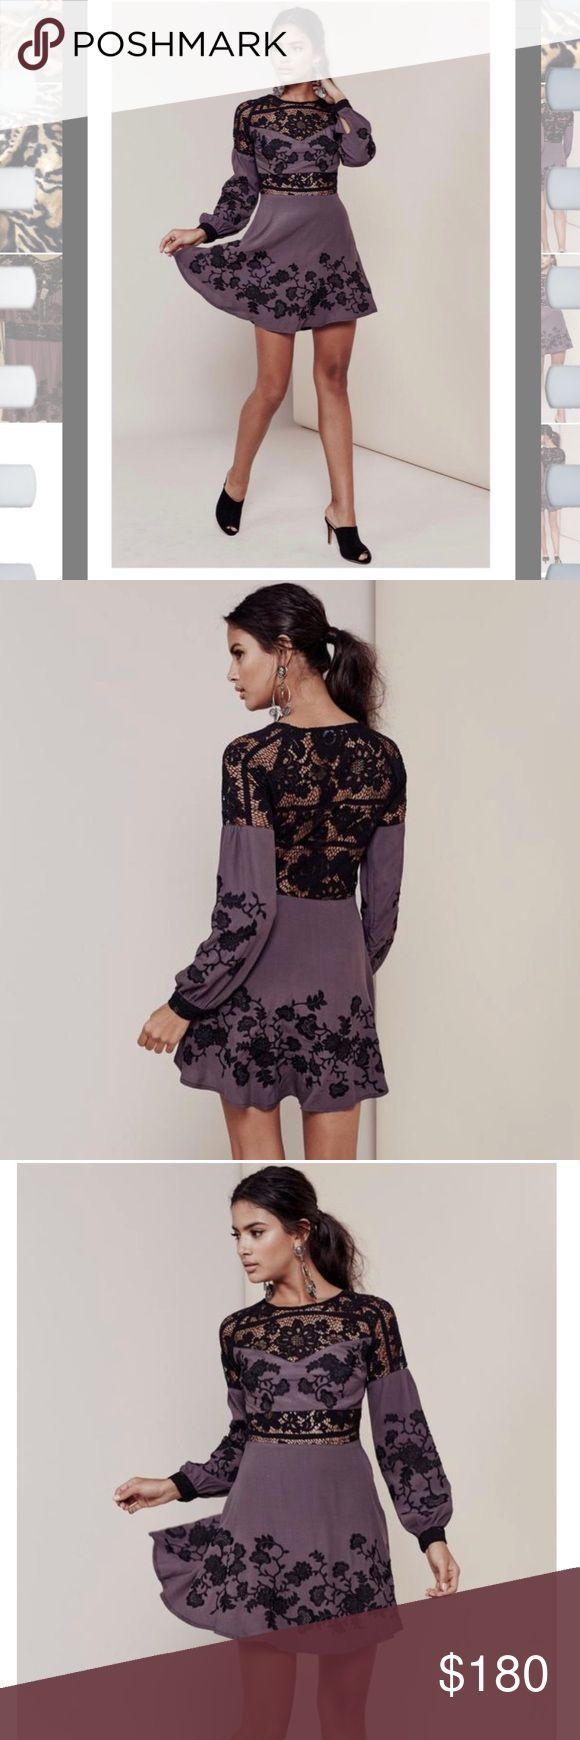 For love and lemons Isabella dress Sexy- Romantic-Head turner  🌸🌸Insets of intricate openwork floral crochet define a figure-skimming minidress framed with long blouson sleeves. Gorgeous vined embroidery adds contrast to the fit-and-flare silhouette that's sure to have all eyes on you.🌸🌸 The back is breathtaking! Sexy! Hard to find color!  Self: 55% viscose , 45% rayon Contrast: 62.5% cotton , 37.5% nylon Dry clean only Unlined Hidden side zip closure Embroidered detail Sheer lace panels…